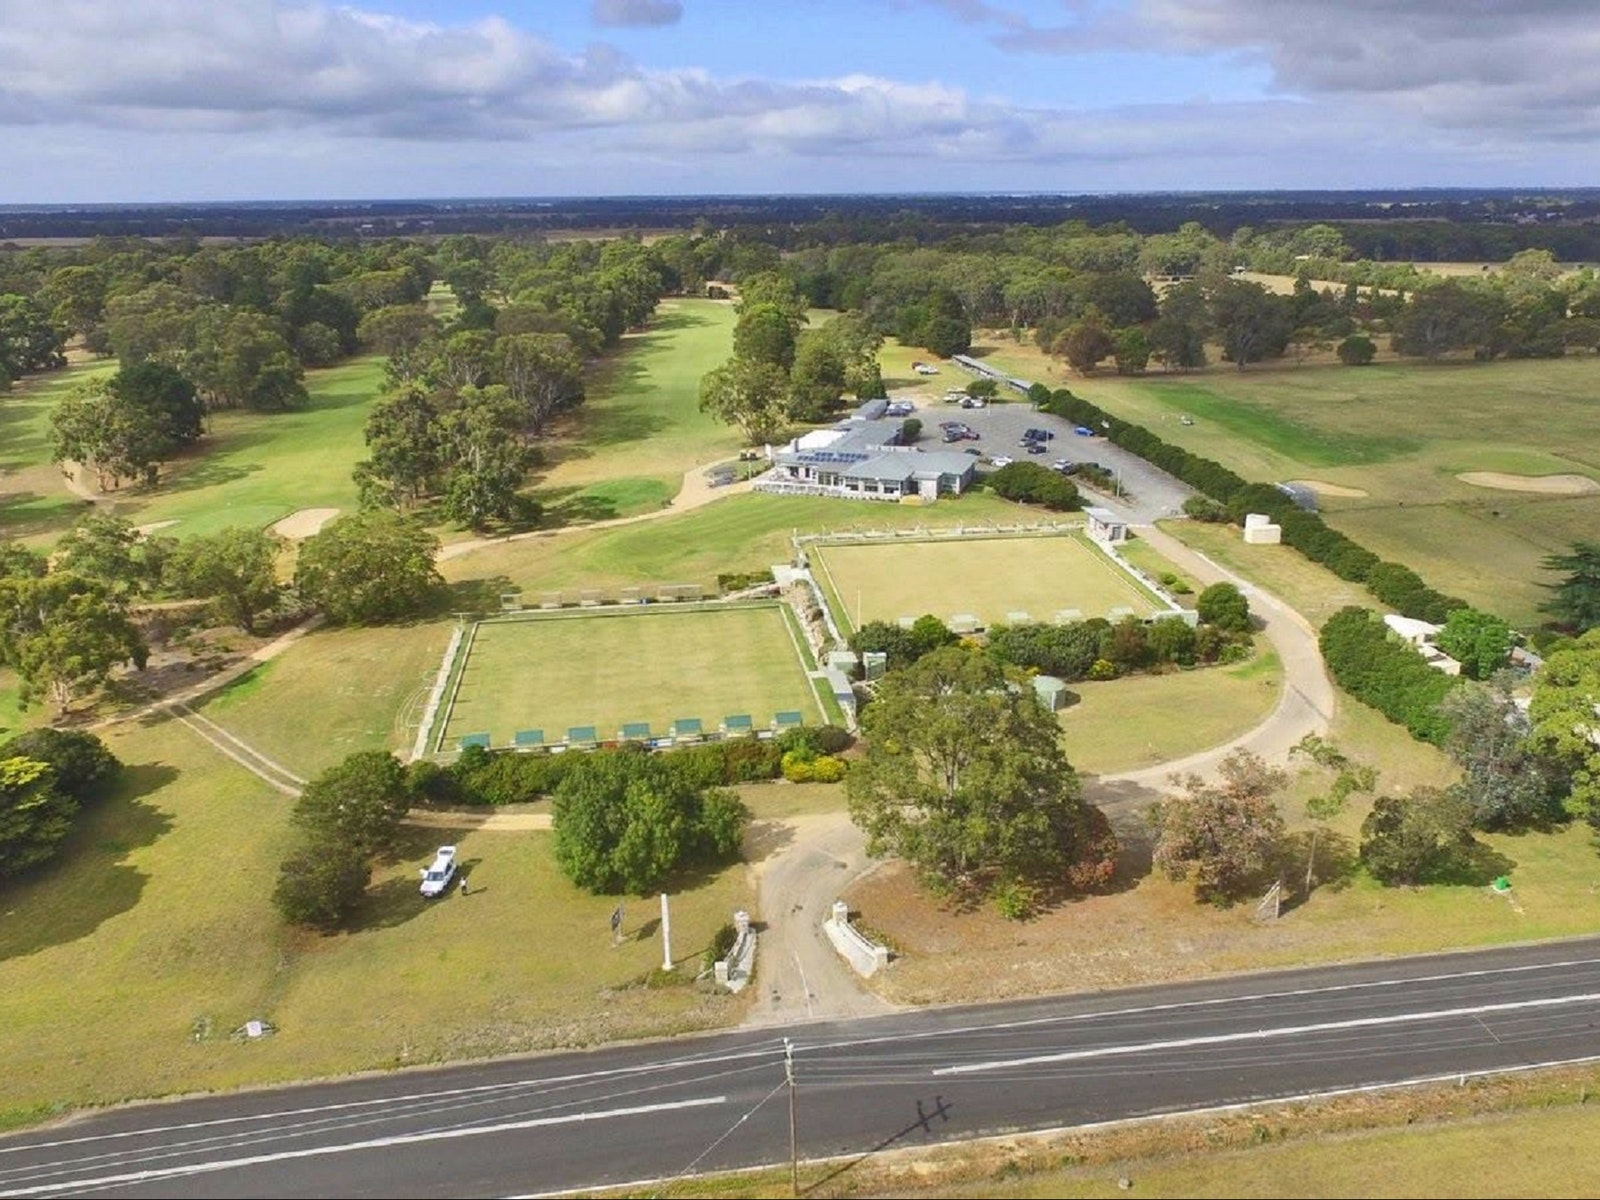 Bairnsdale Golf Club from above, showing the entire course, club house and entry